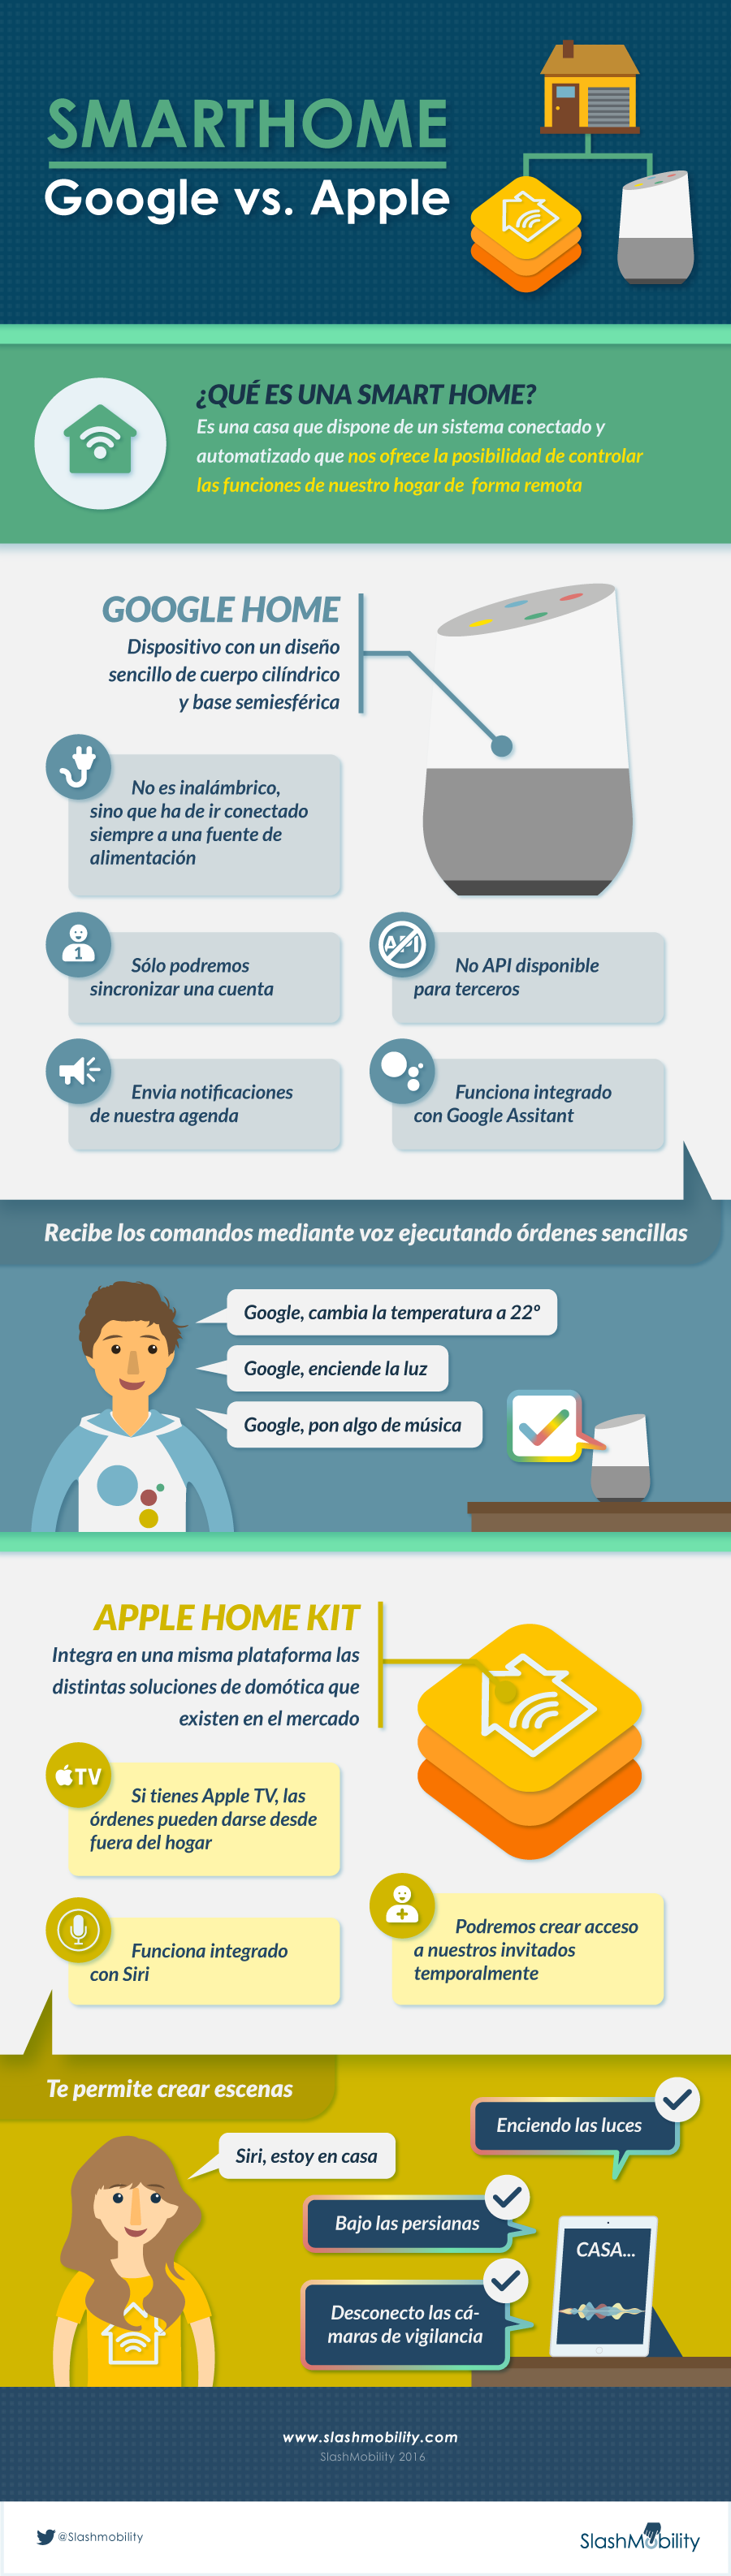 smarthome google vs apple infografia infographic tech tics y formaci n. Black Bedroom Furniture Sets. Home Design Ideas